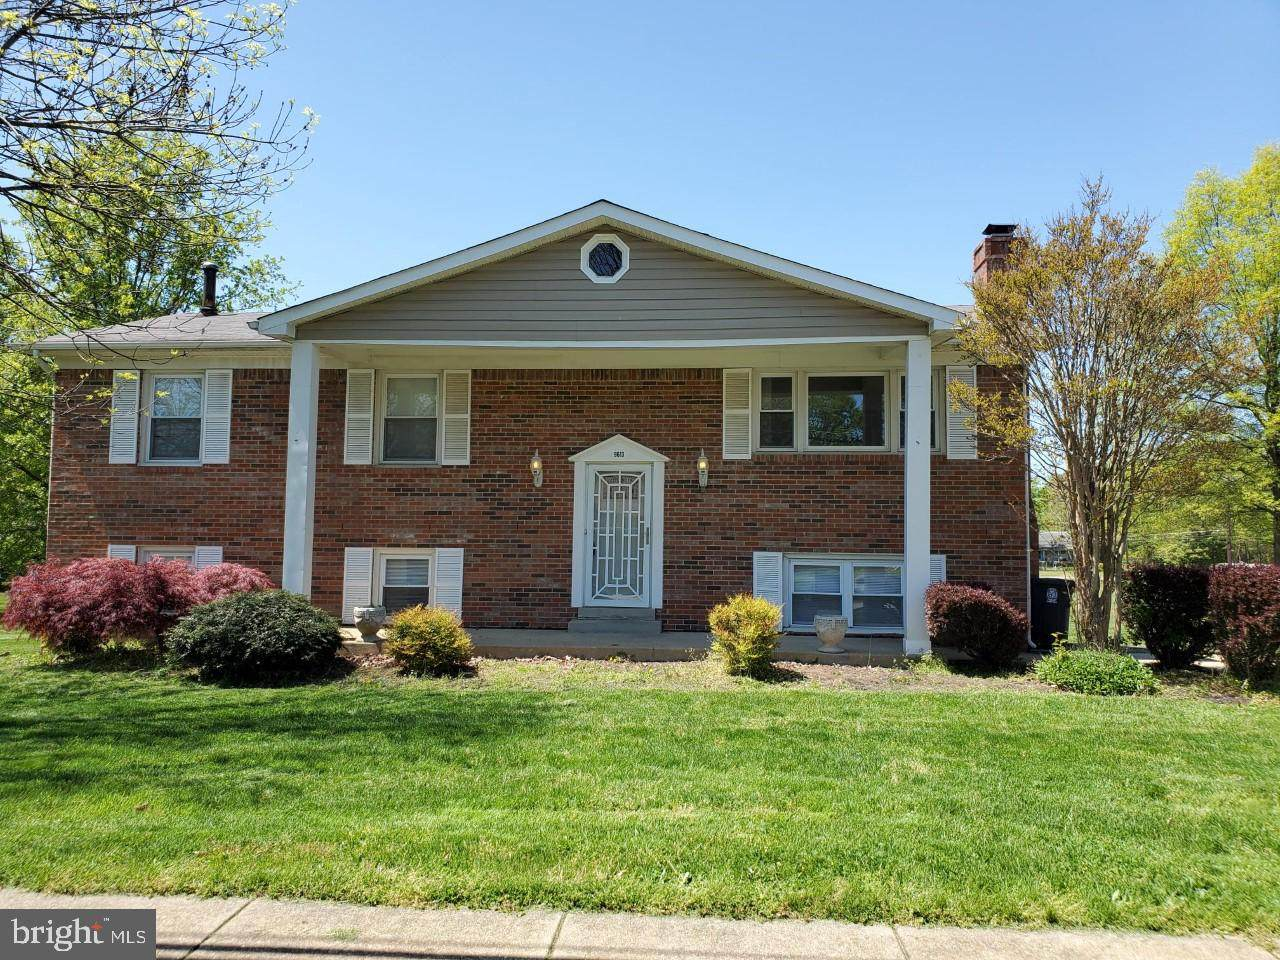 9613 Old Allentown Road - Photo 1